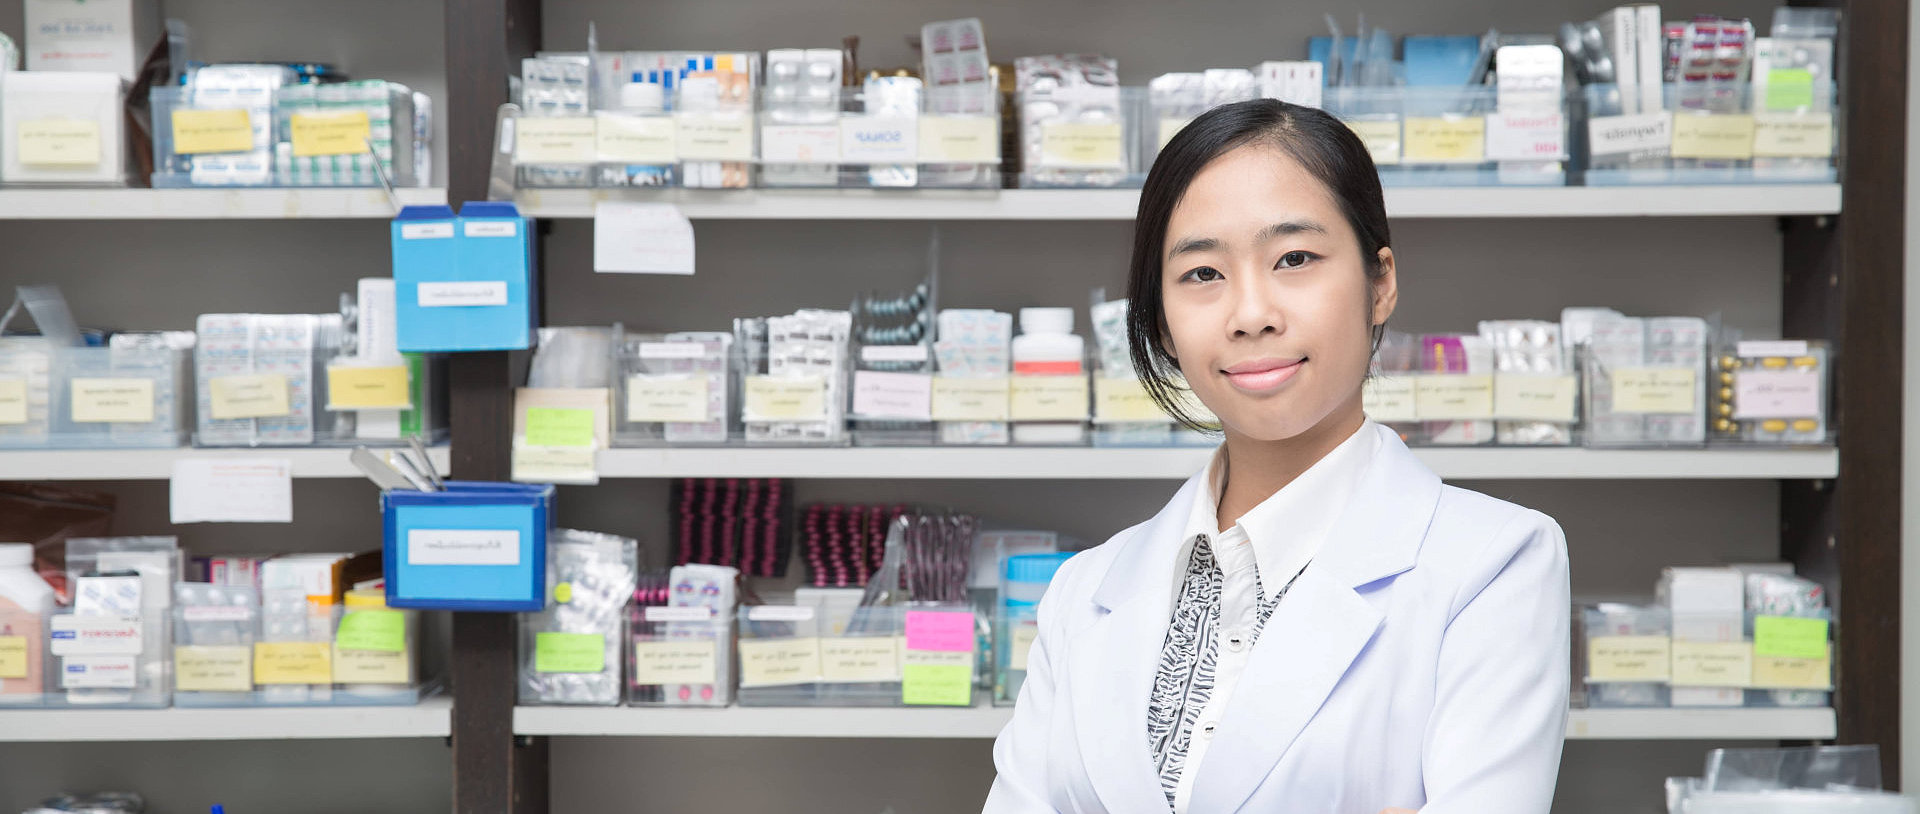 female pharmacist standing